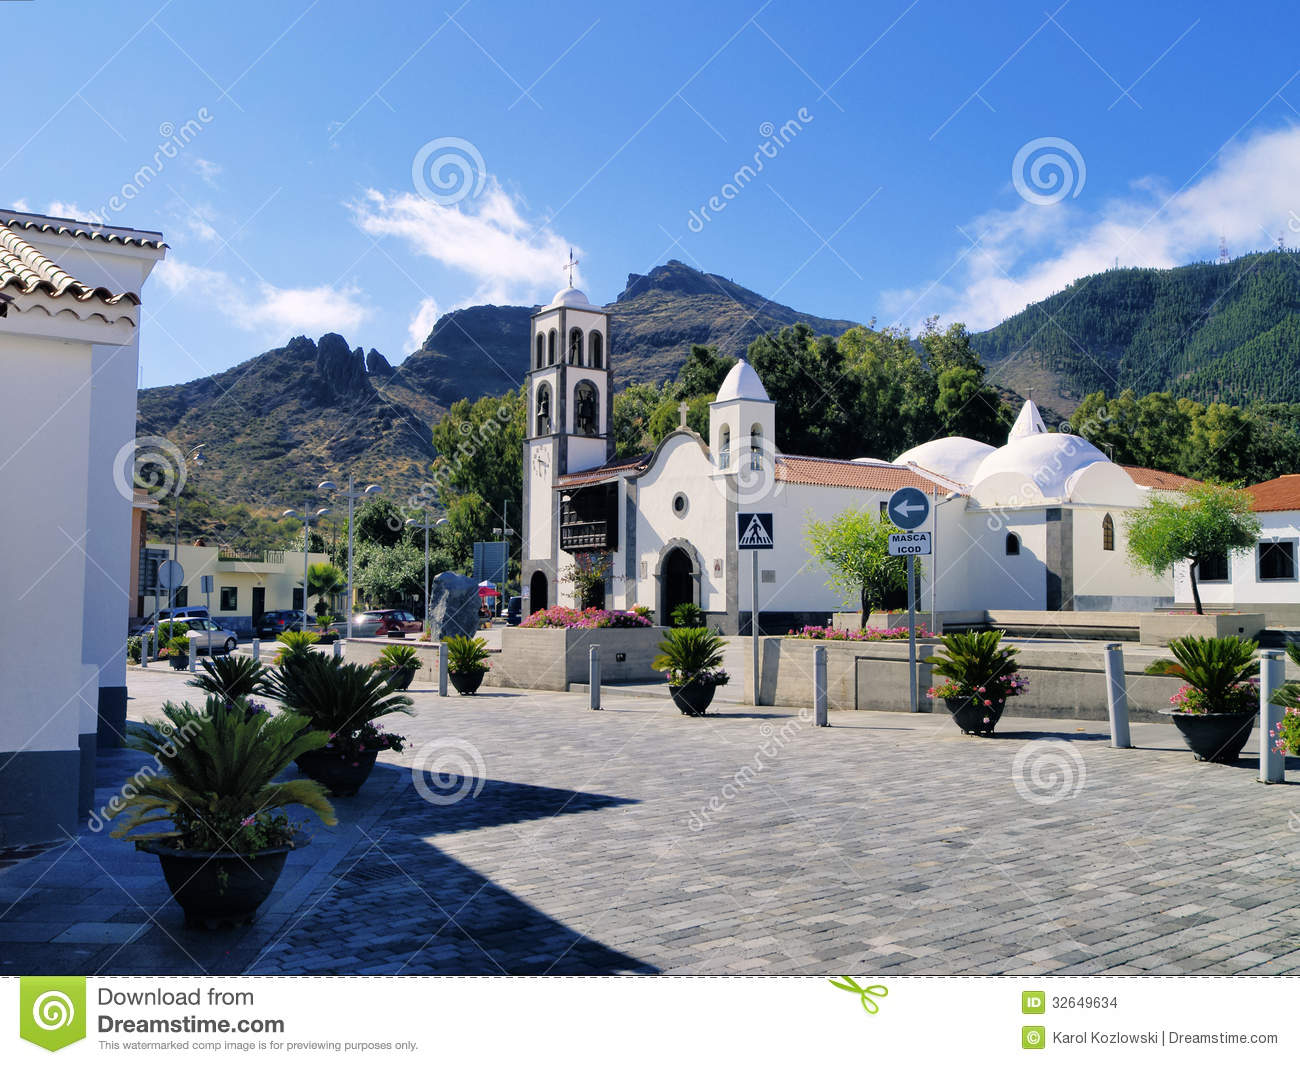 Santiago del Teide Spain  city pictures gallery : Santiago del Teide small town on Tenerife, Canary Islands, Spain.